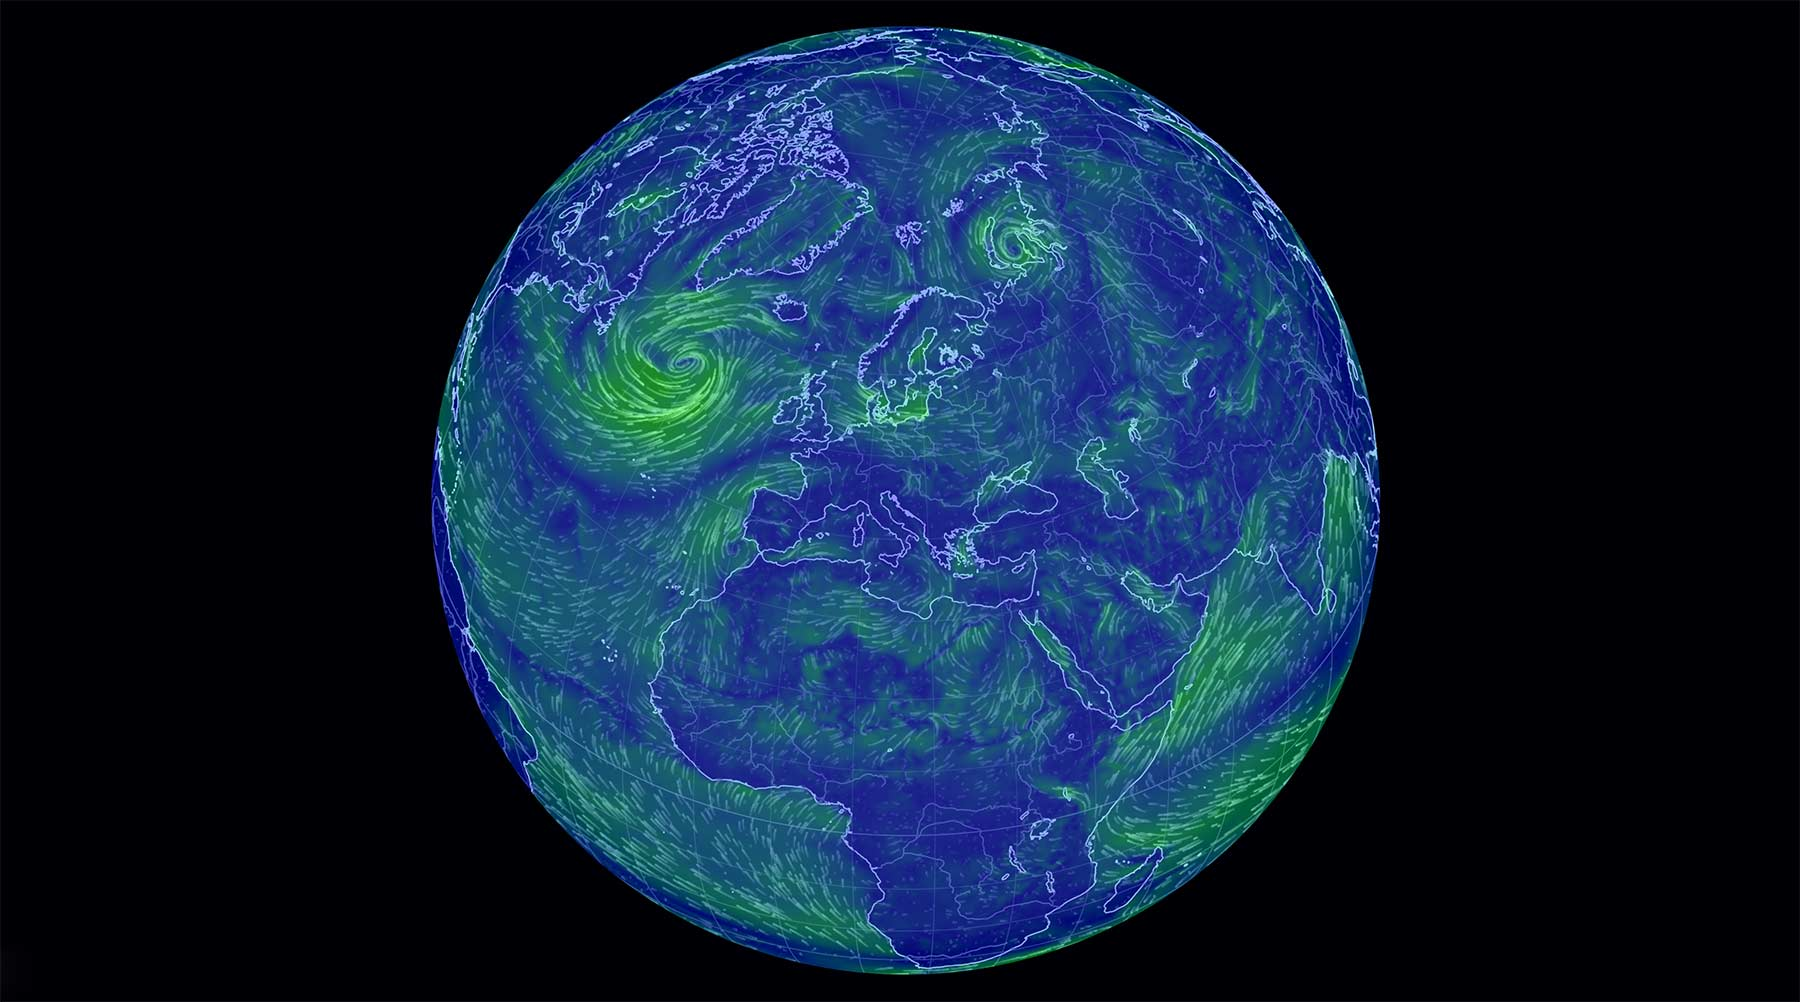 Interaktive Wetter-Weltkarte earth-visualization